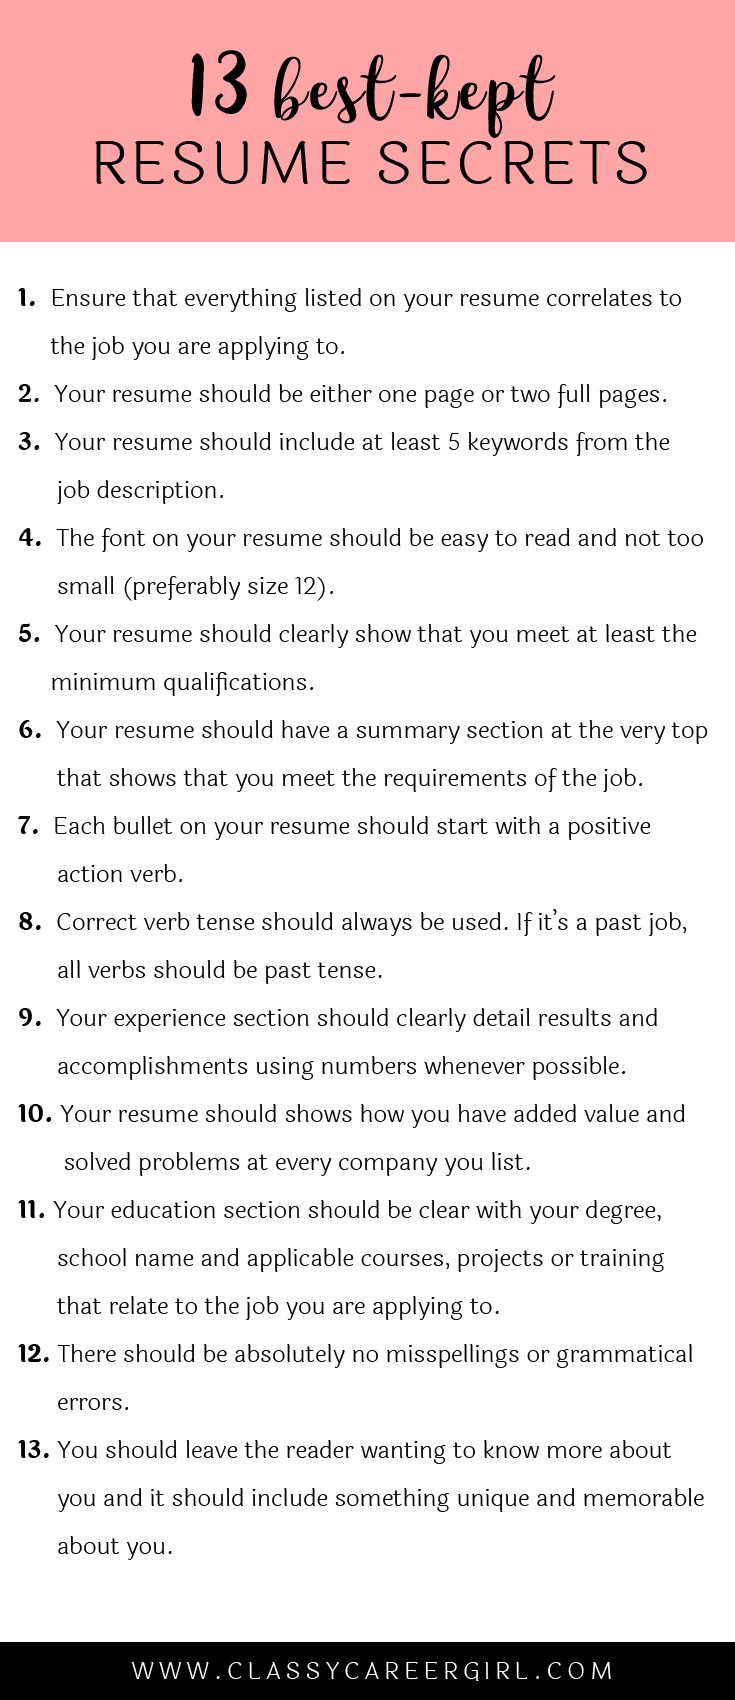 Opposenewapstandardsus  Marvellous  Ideas About Resume On Pinterest  Cv Format Resume Cv And  With Magnificent Some Hiring Managers Will Toss Your Resume Out If You Dont Know These  With Easy On The Eye Example Federal Resume Also Law Enforcement Resumes In Addition Nursing Resume Builder And Create My Resume For Free As Well As Resume Paper Size Additionally Skills Portion Of Resume From Pinterestcom With Opposenewapstandardsus  Magnificent  Ideas About Resume On Pinterest  Cv Format Resume Cv And  With Easy On The Eye Some Hiring Managers Will Toss Your Resume Out If You Dont Know These  And Marvellous Example Federal Resume Also Law Enforcement Resumes In Addition Nursing Resume Builder From Pinterestcom